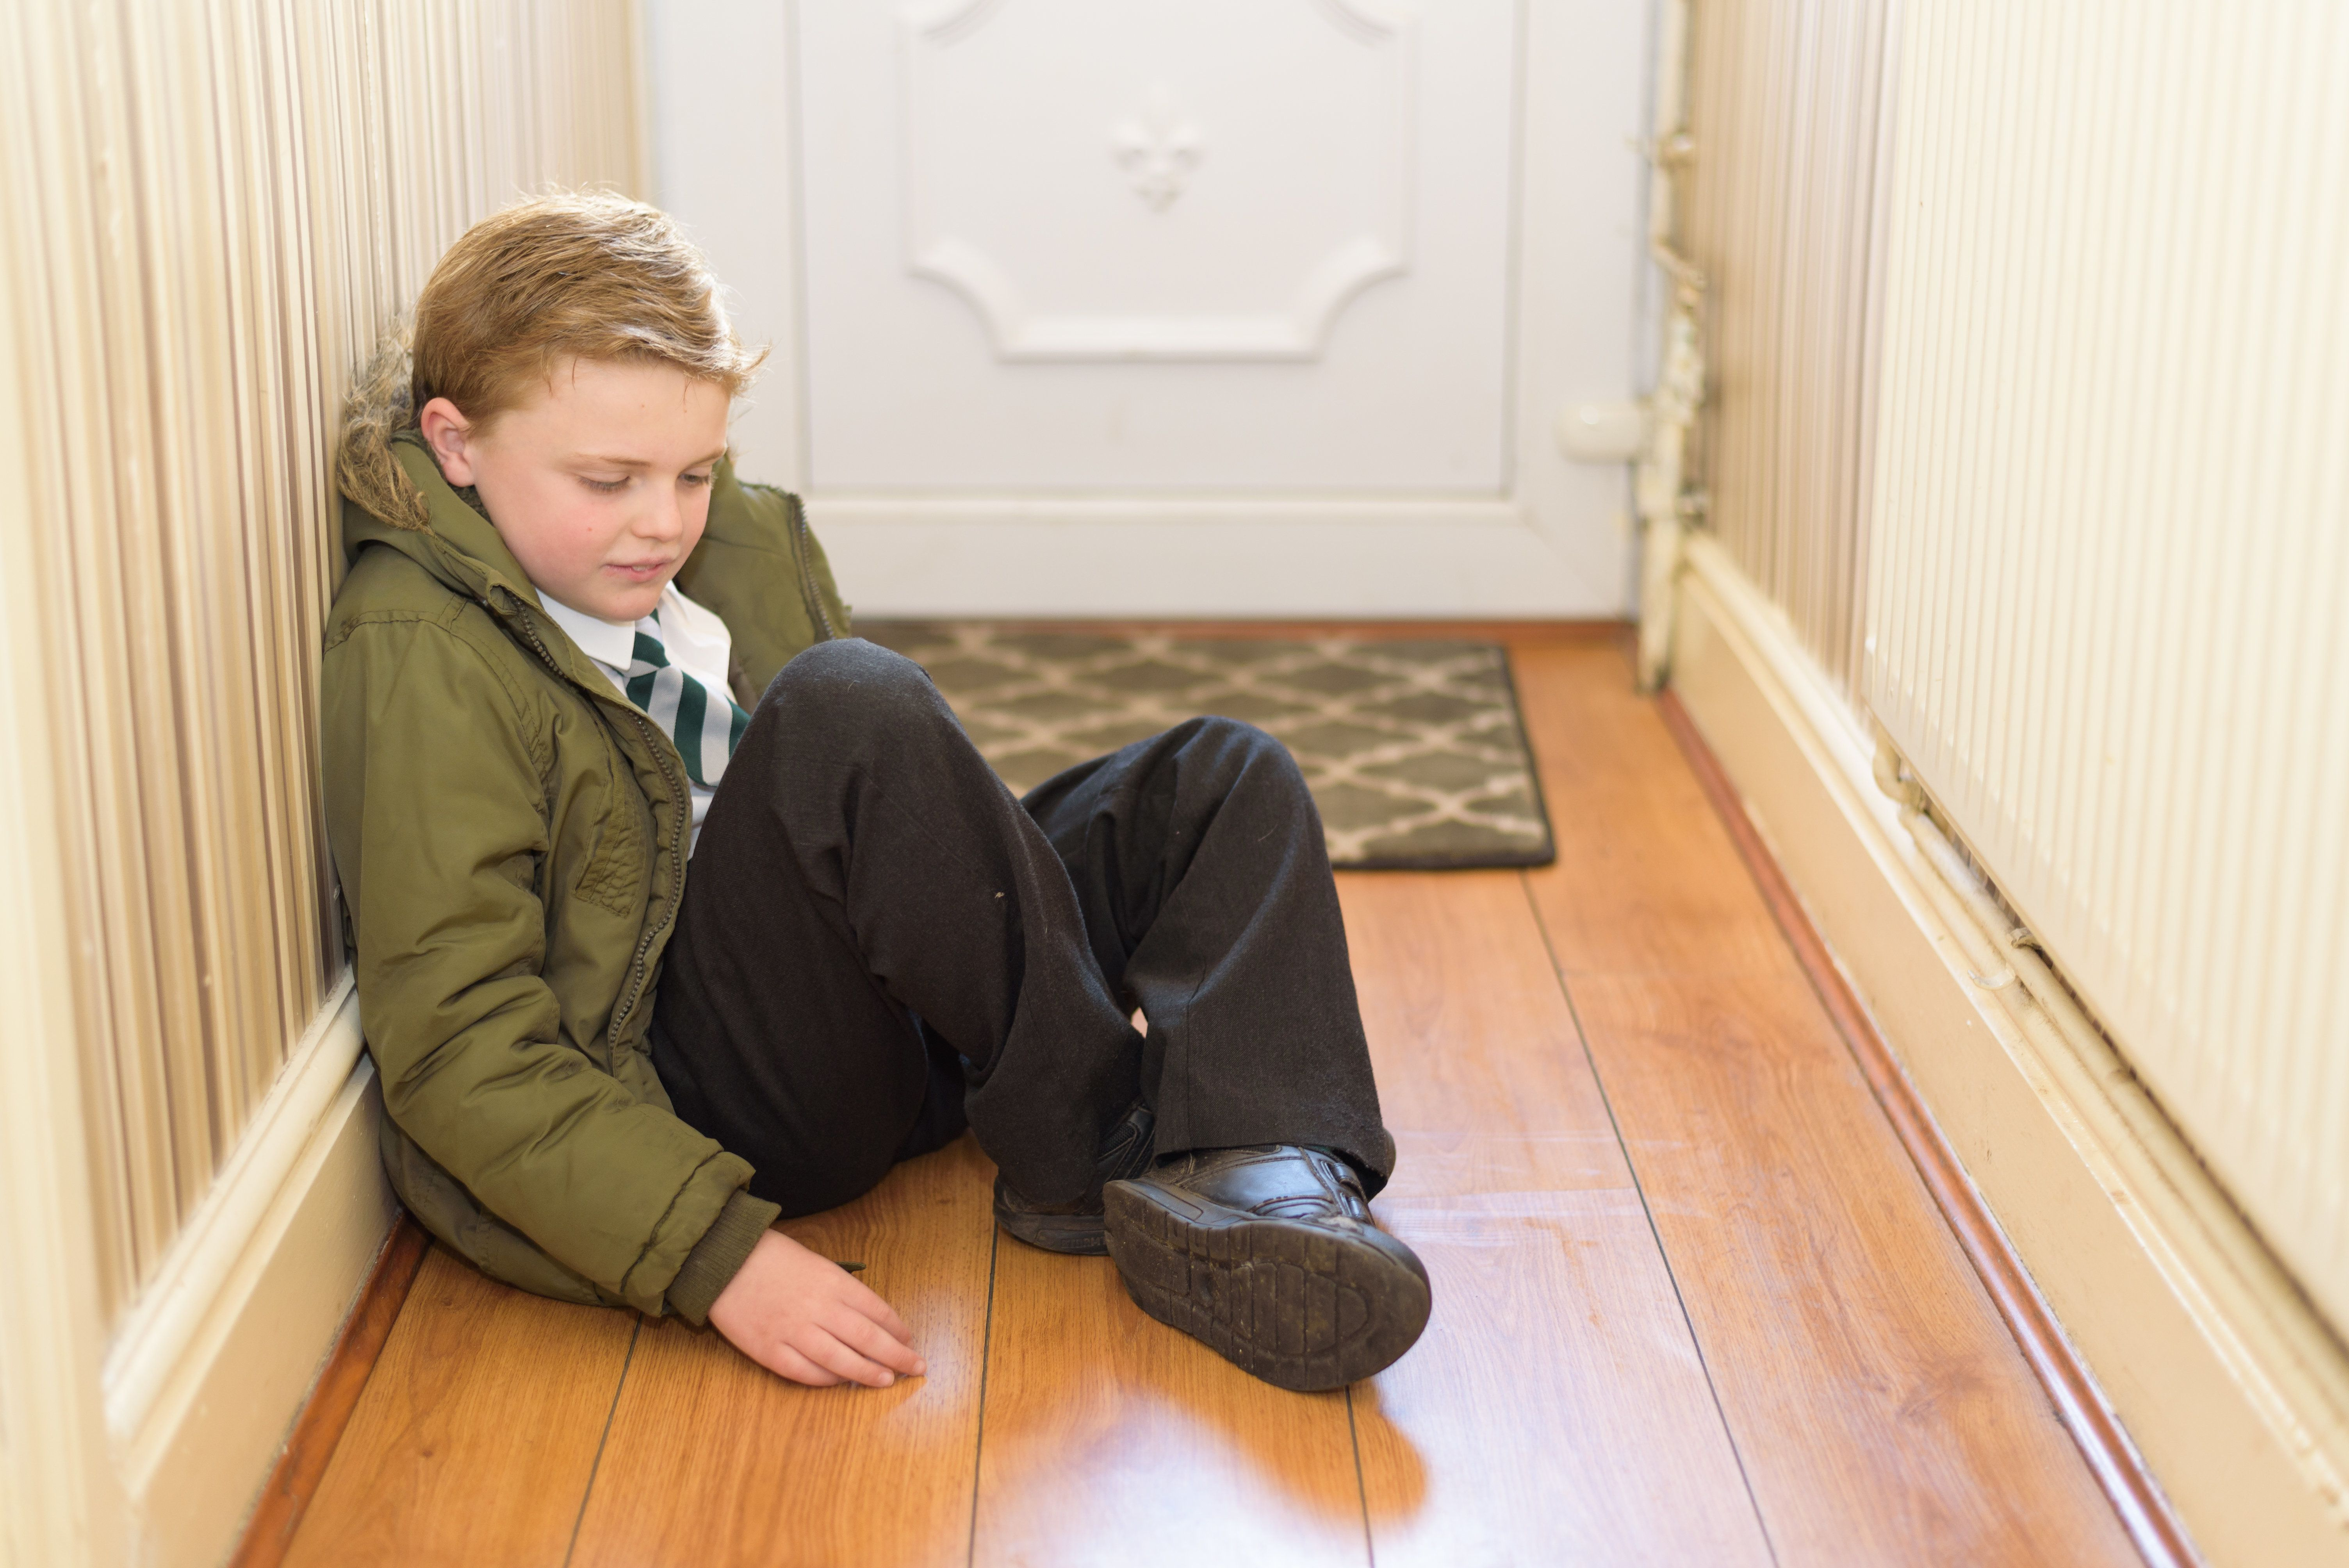 Almost Half Of Secondary School Students Fear Going Back To School Because Of